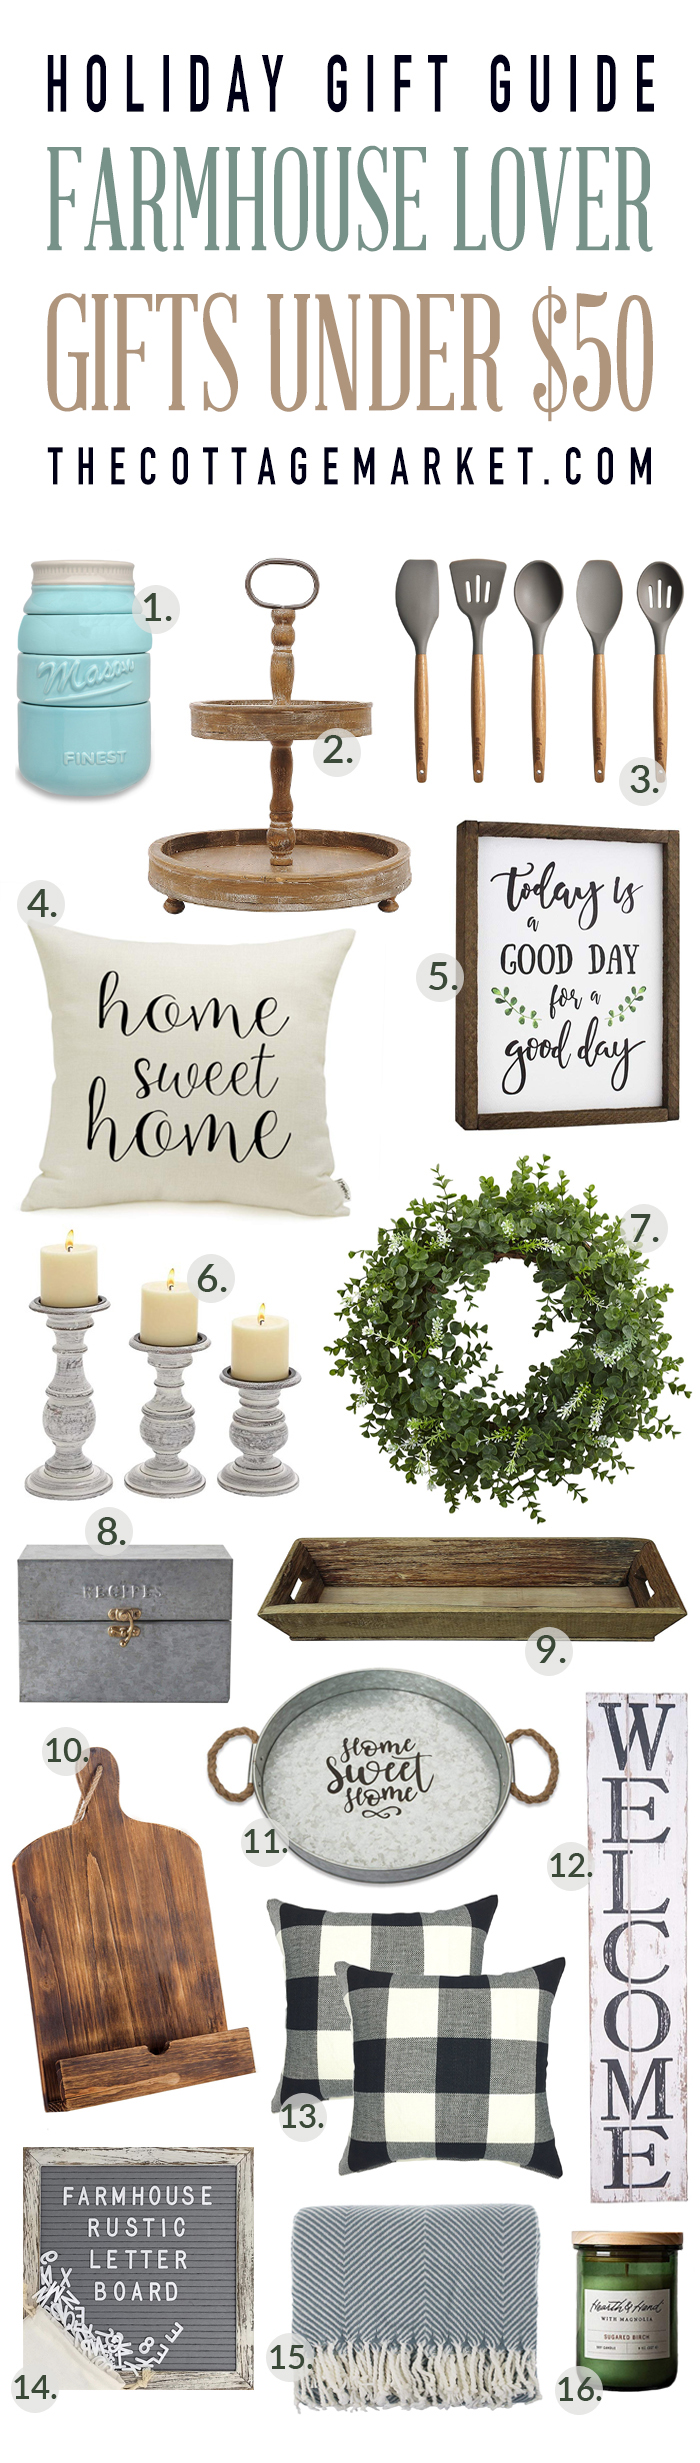 https://thecottagemarket.com/wp-content/uploads/2018/11/HGG-Farmhouse-Lover-Gifts-Under-50-T-1.jpg